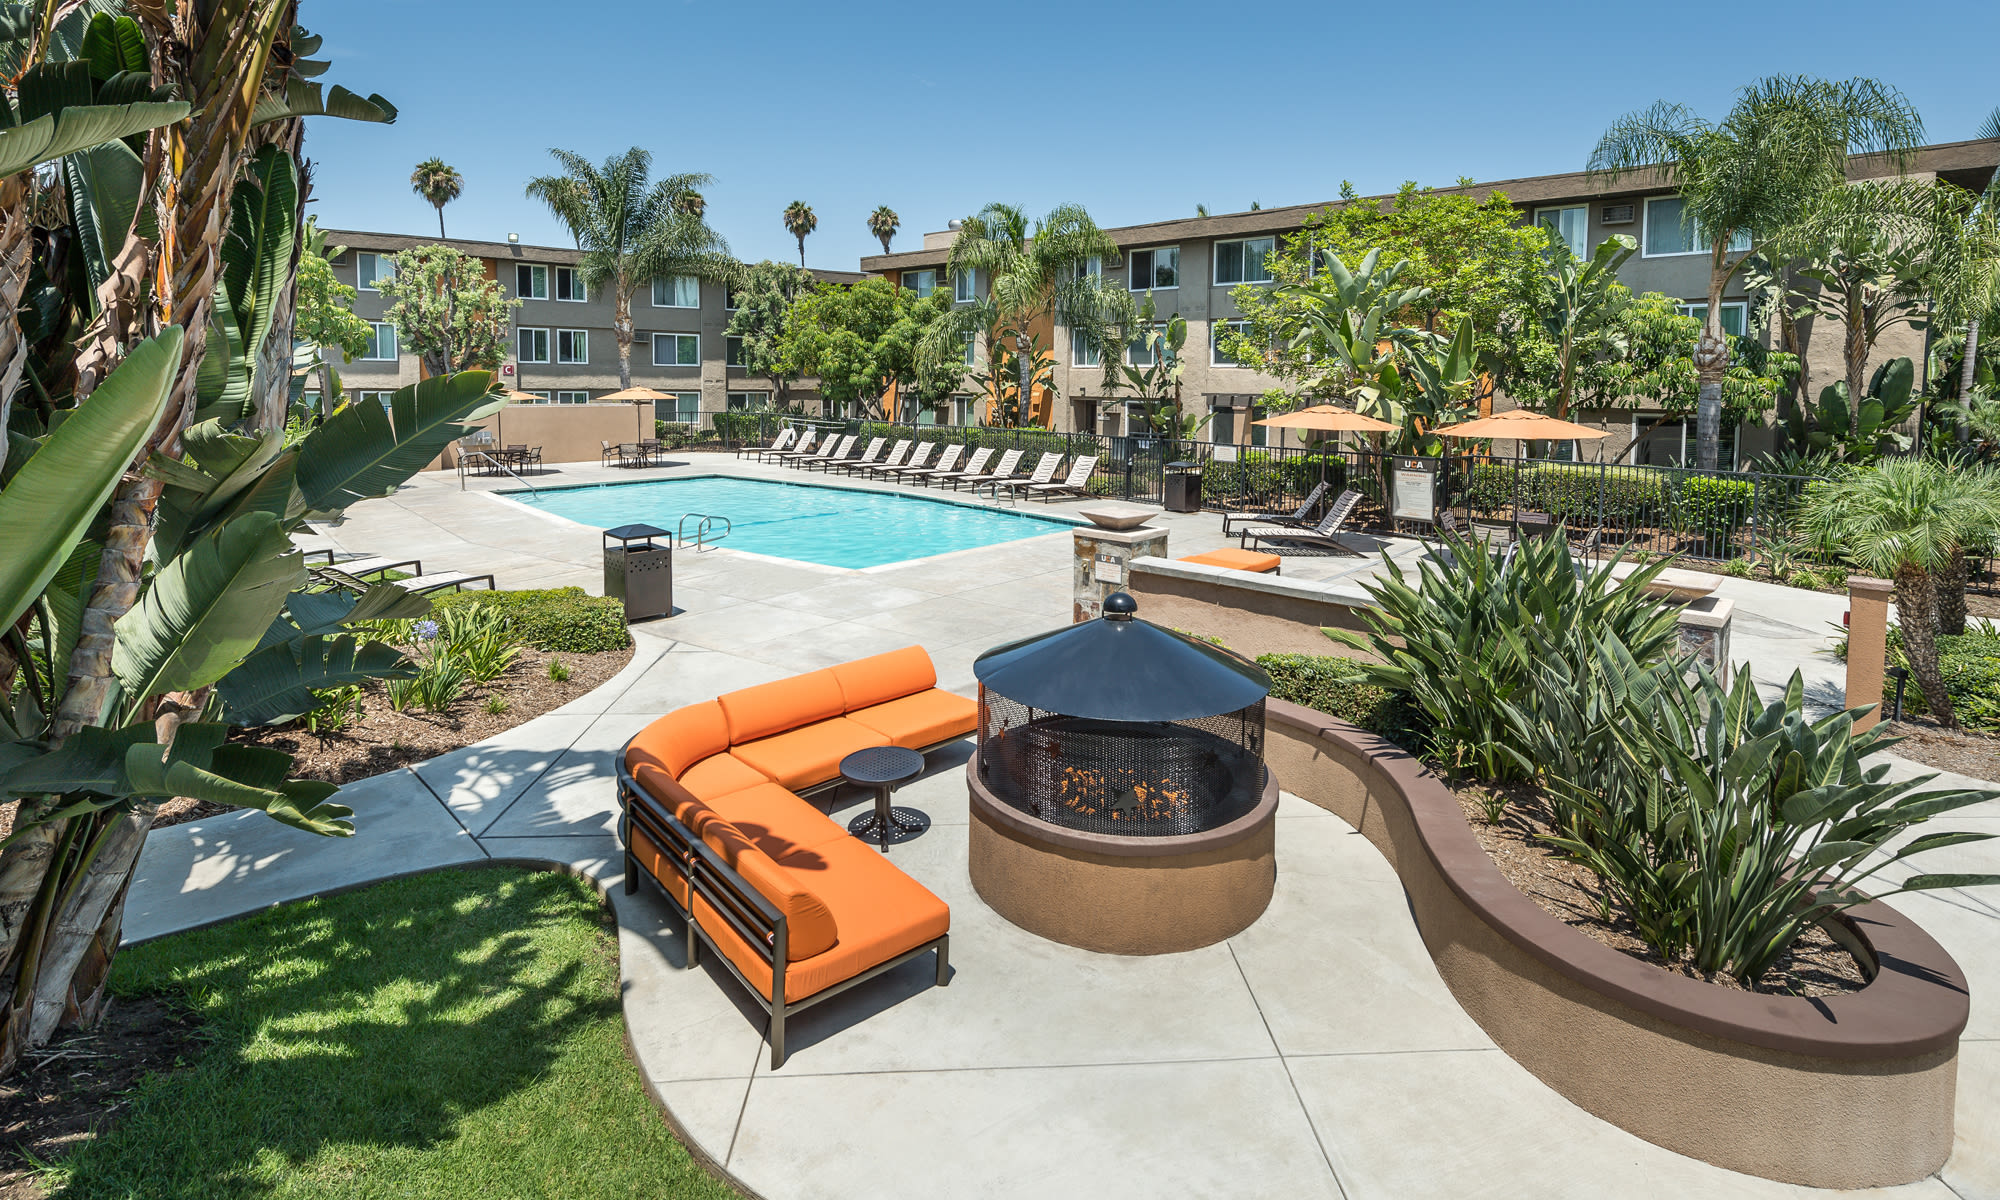 Photos of UCA Apartment Homes in Fullerton, California